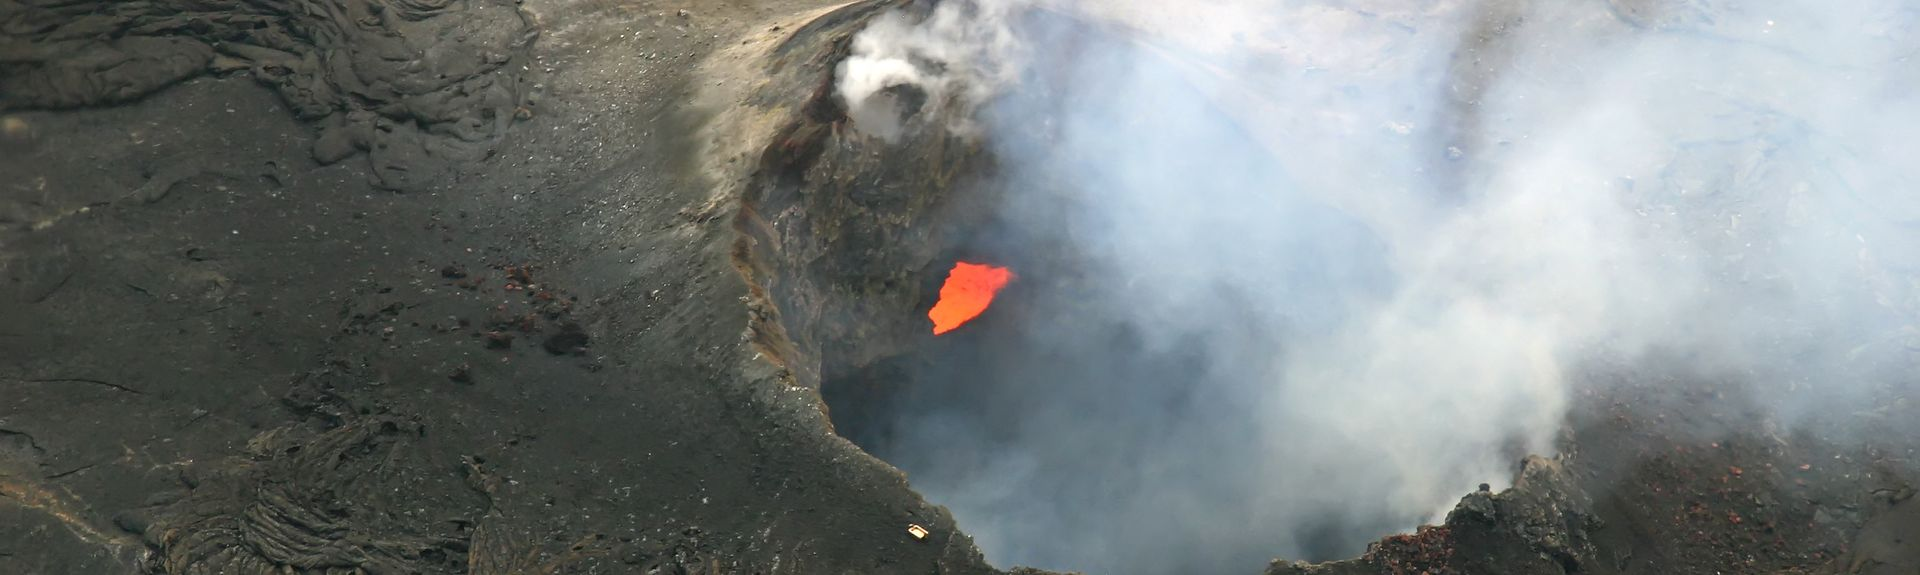 Volcano, Hawaii, United States of America